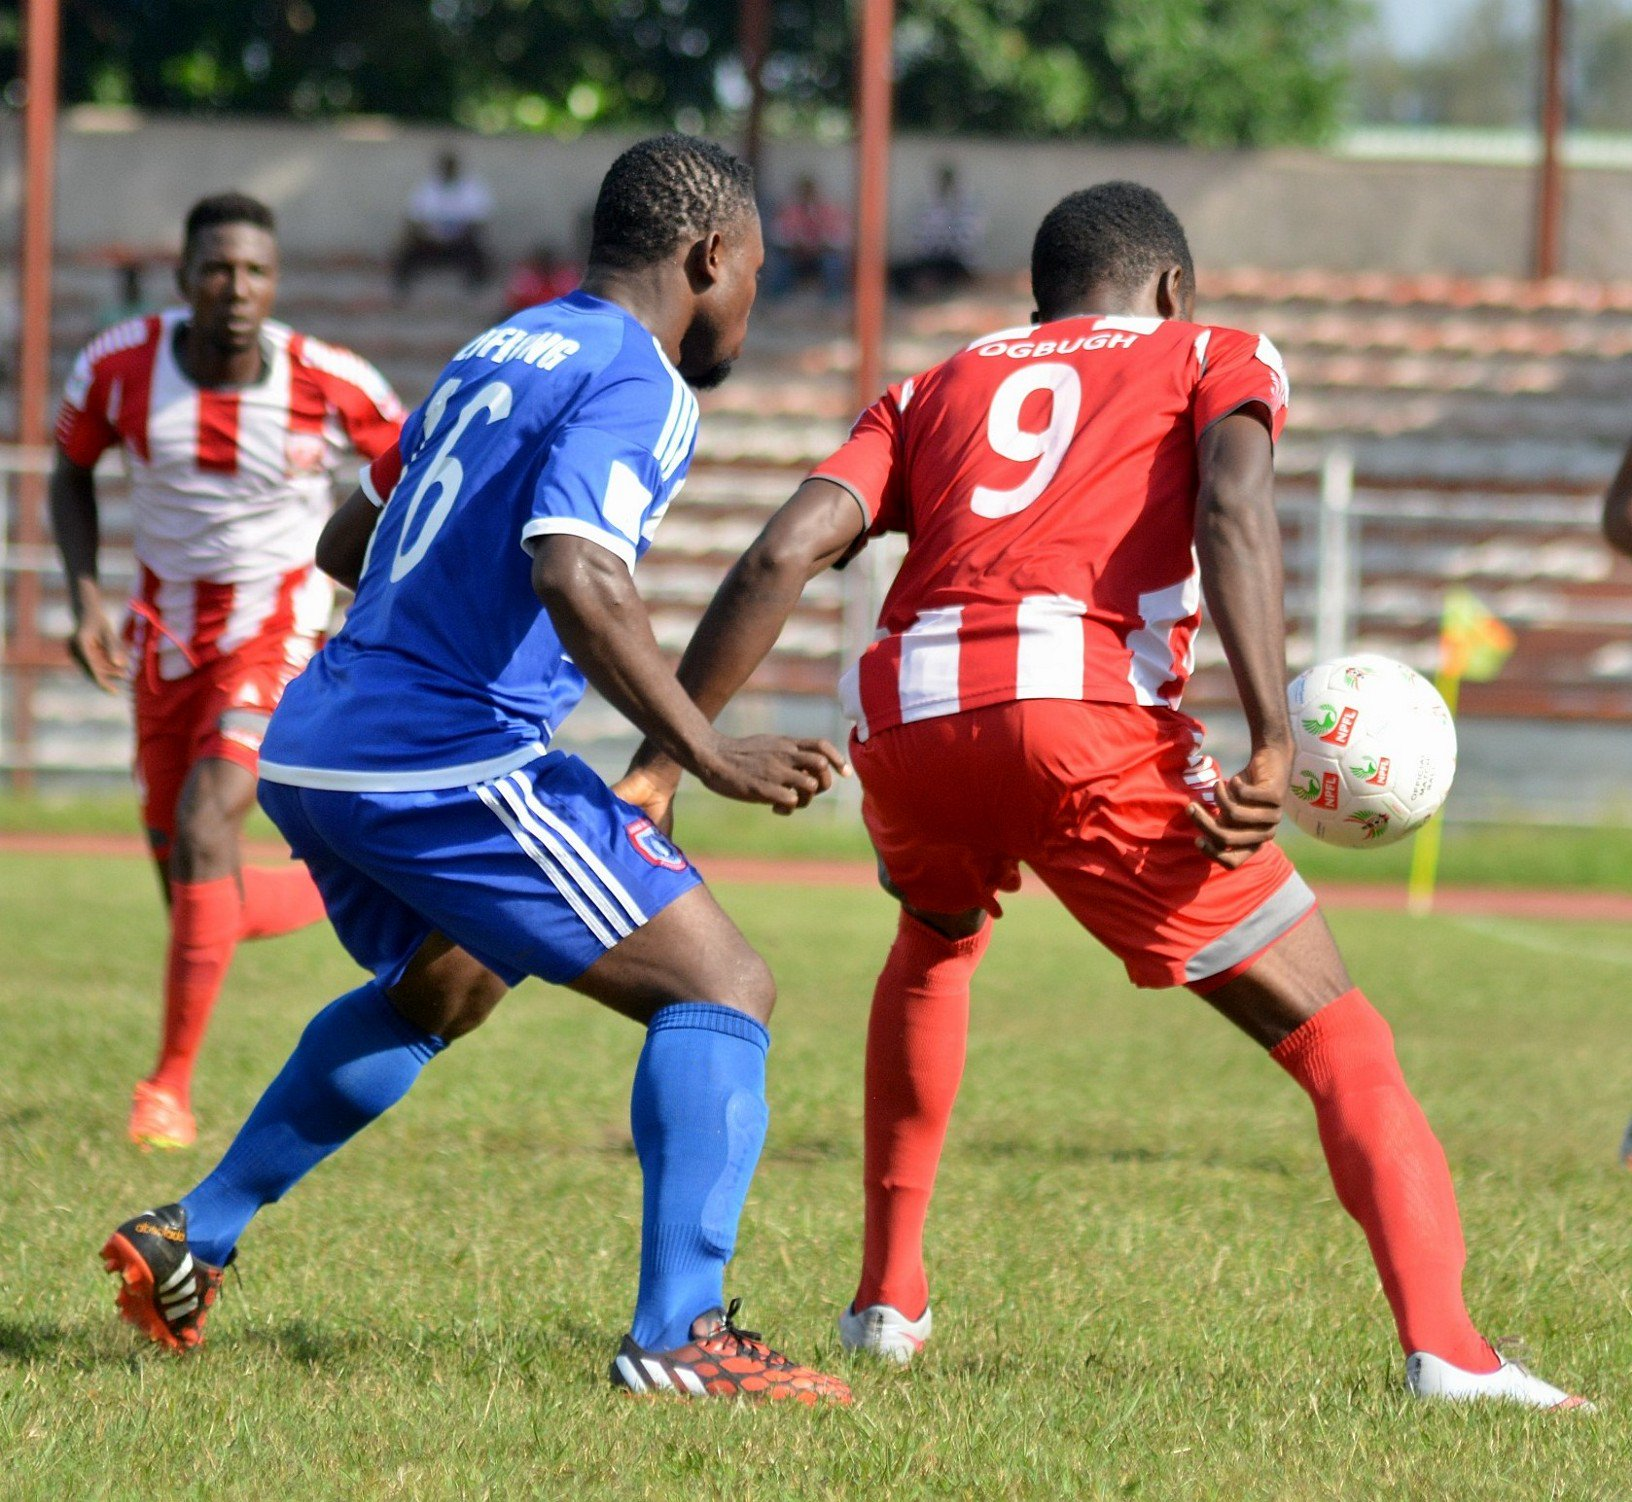 NPFL: Heartland Break Enyimba Heart, El-Kanemi See Off MFM